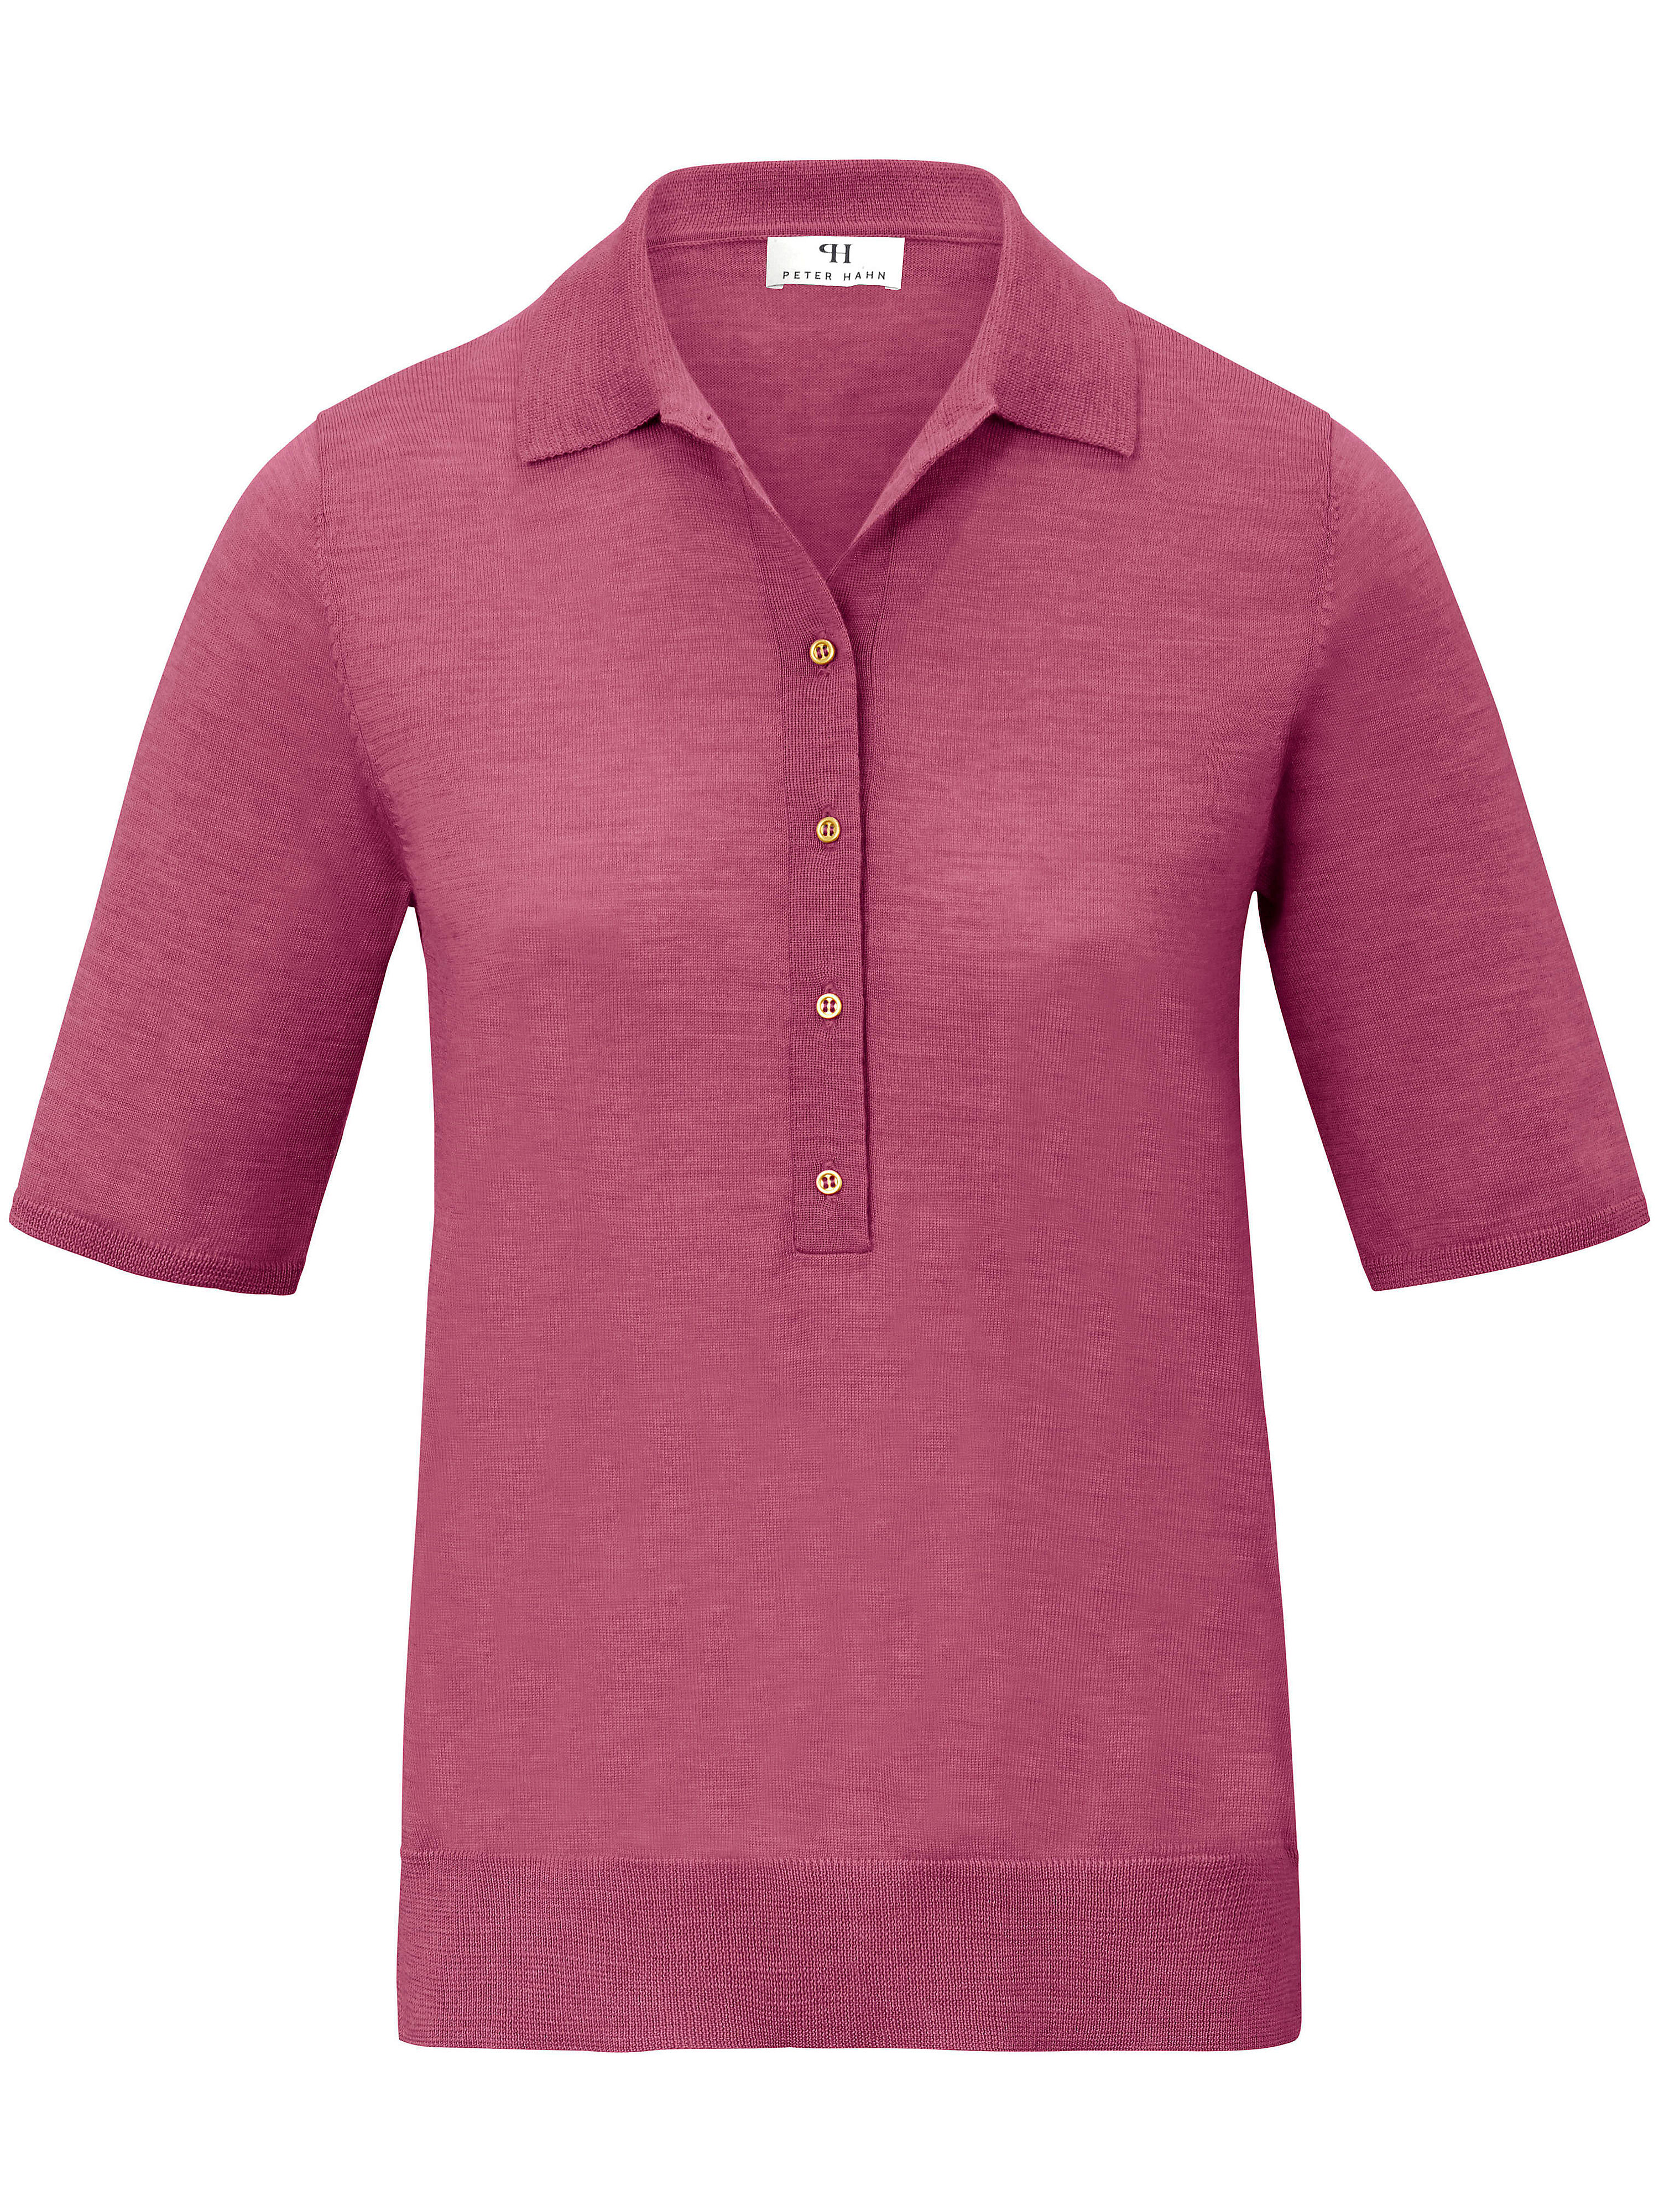 Image of   Polobluse i 100% ren ny uld Fra Peter Hahn rosé